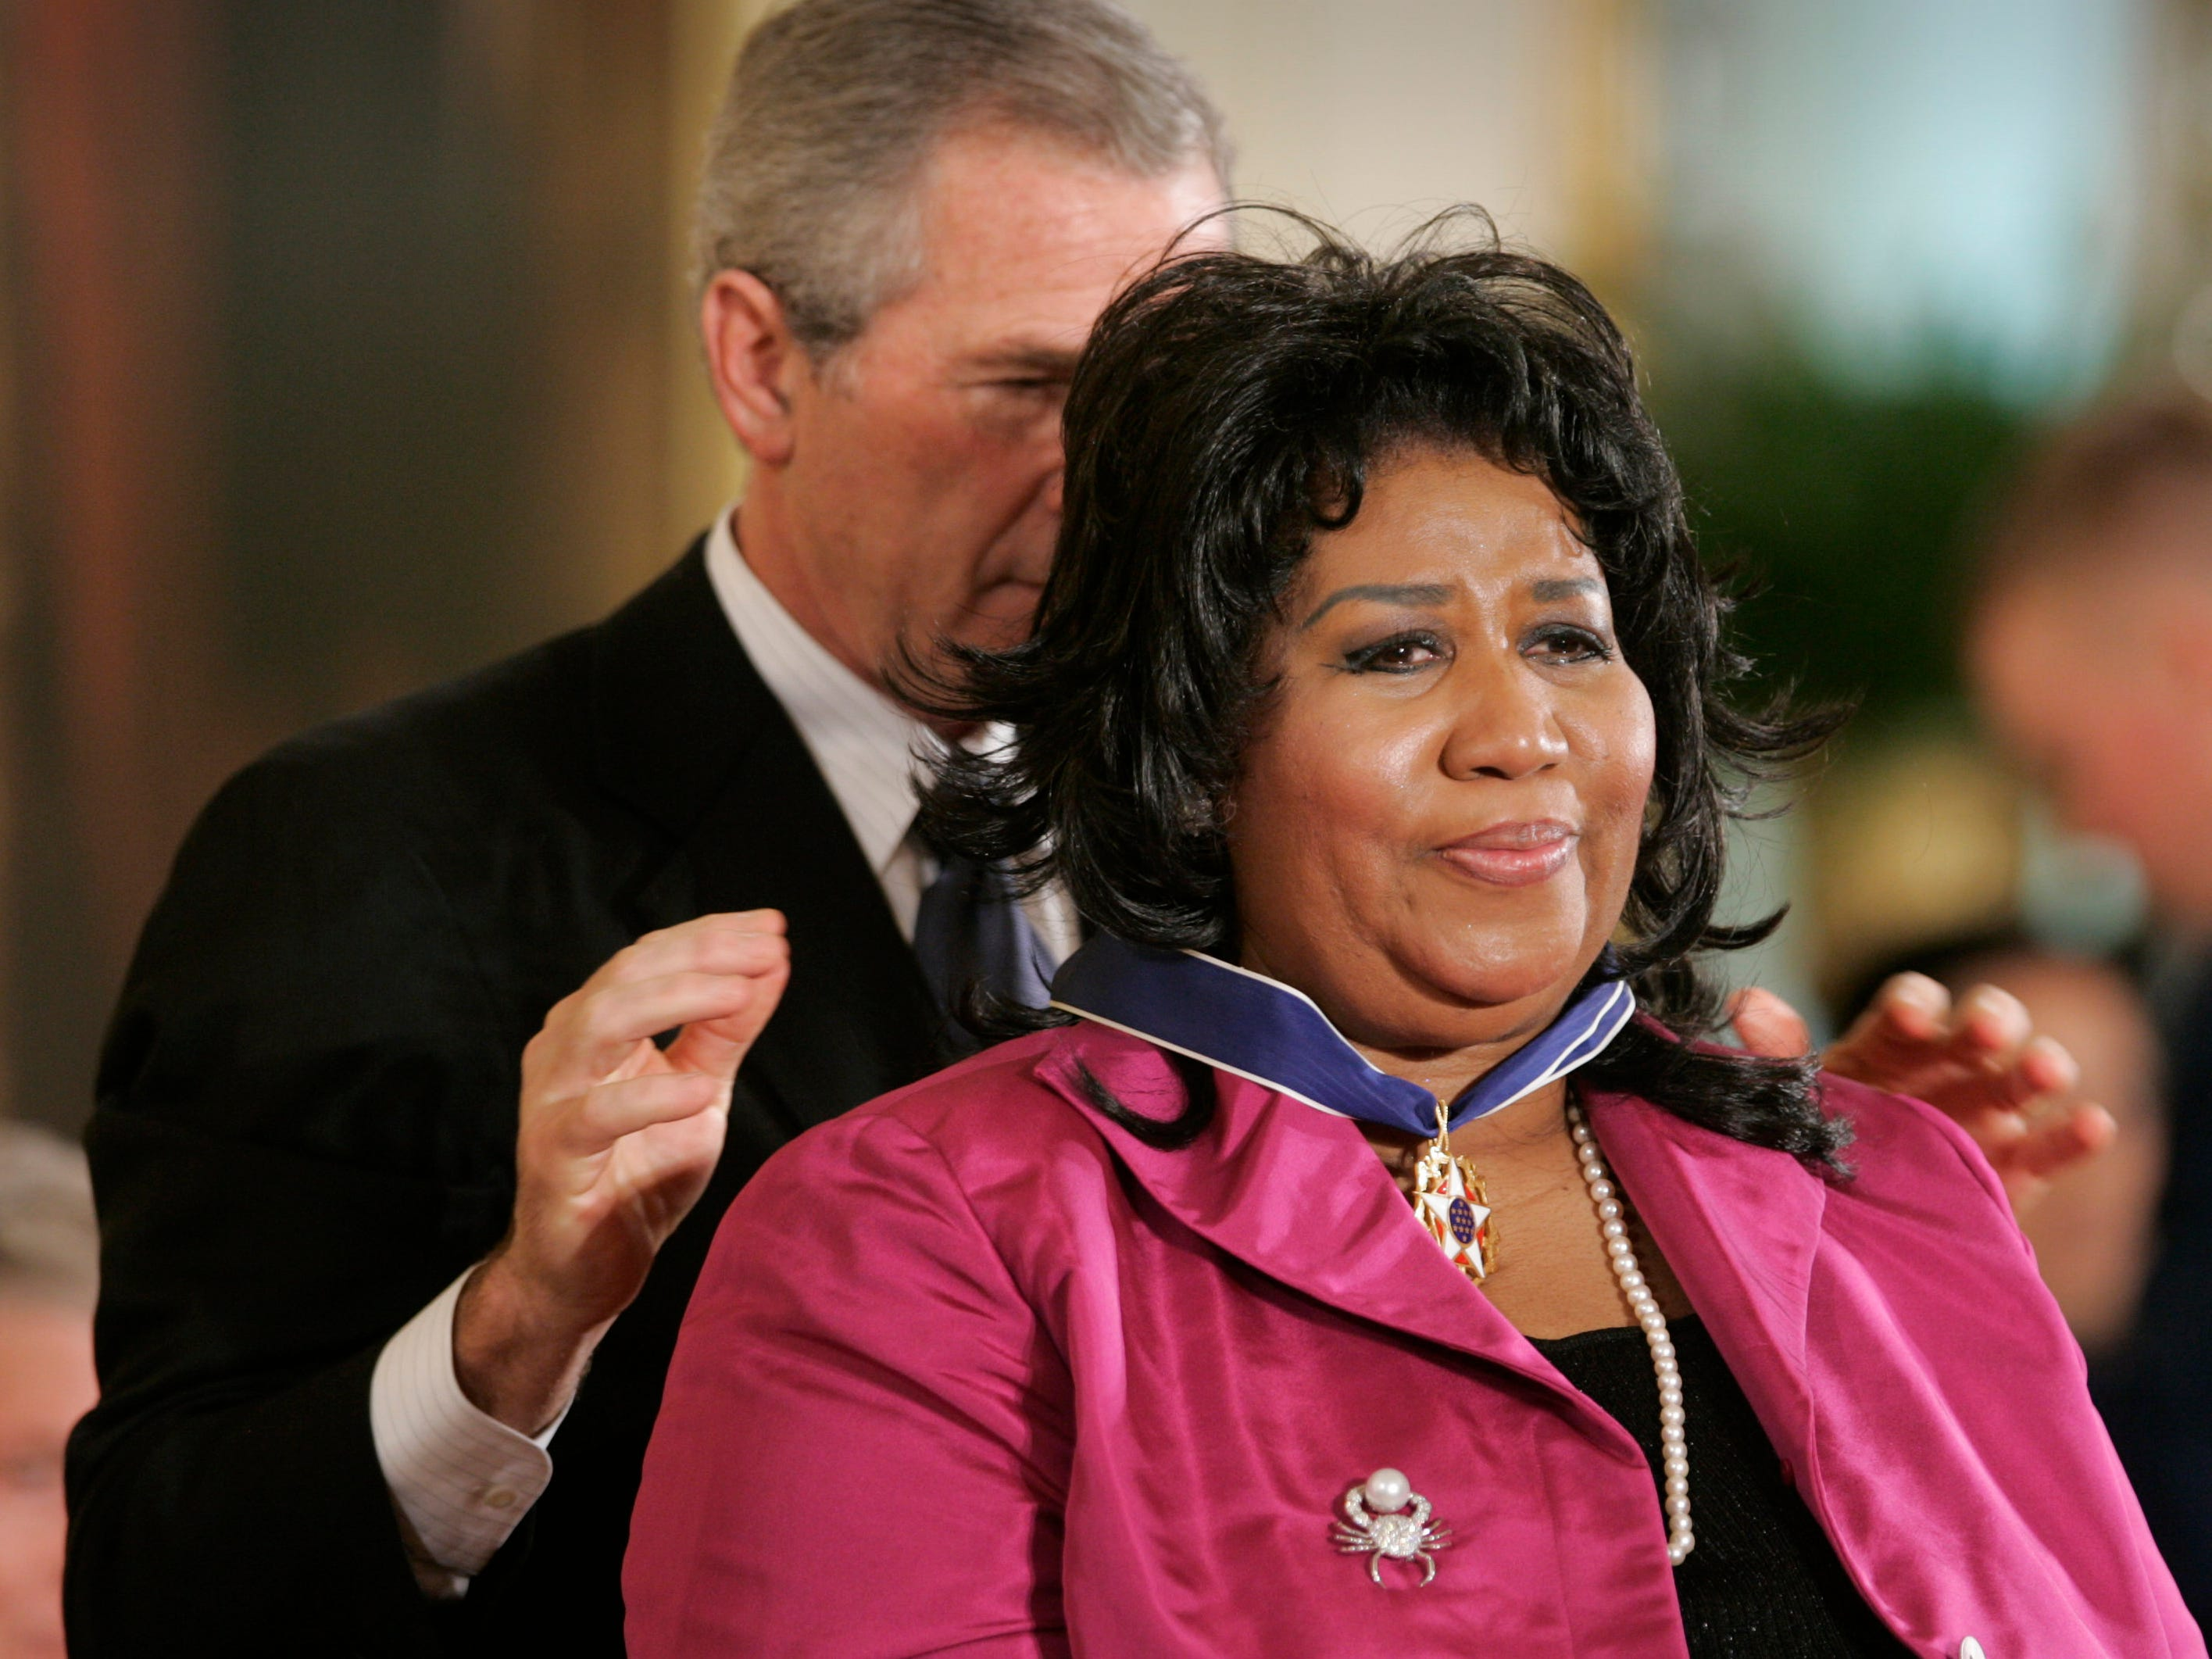 President Bush awards singer Aretha Franklin the Presidential Medal of Freedom Award in the East Room of the White House, Wednesday, Nov. 9, 2005, in Washington. The Presidential Medal of Freedom is the highest civilian award given.(AP Photo/Lawrence Jackson)